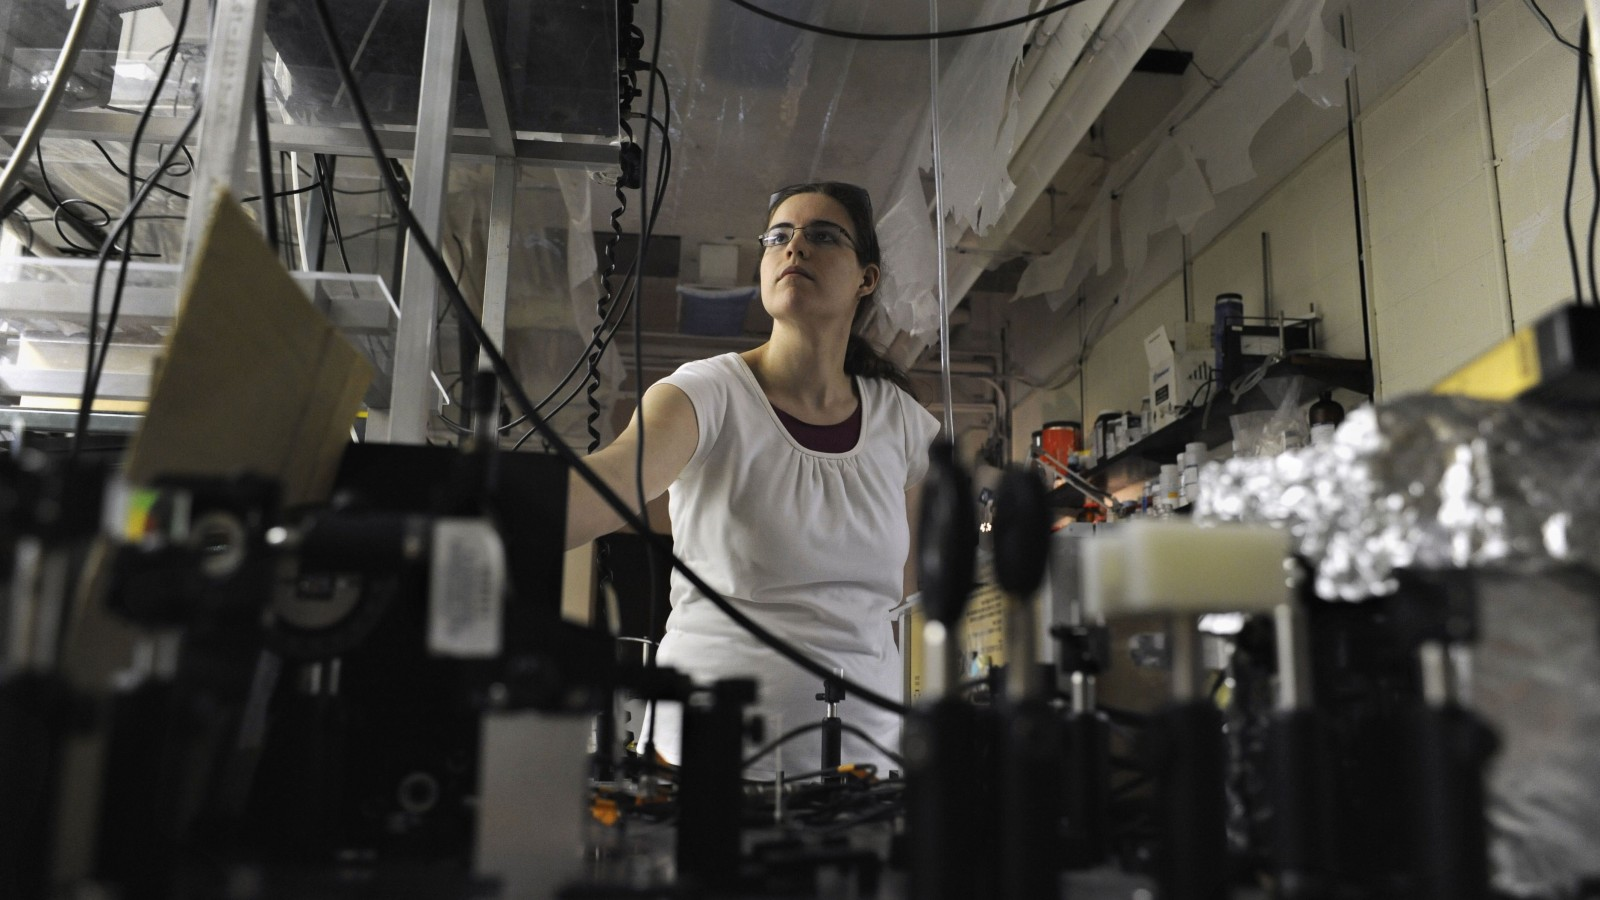 """In this Monday, Sept. 19, 2011 photo, Rebecca Allred, a second-year chemistry doctoral student at Yale, works at Kline Chemistry Laboratory at Yale University in New Haven, Conn. With two-thirds of all undergraduate degrees and 60 percent of master's degrees now going to women, many believe it's only a matter of time before that trend influences the upper echelons of the """"STEM"""" fields - science, technology, engineering and math. (AP Photo/Jessica Hill)"""